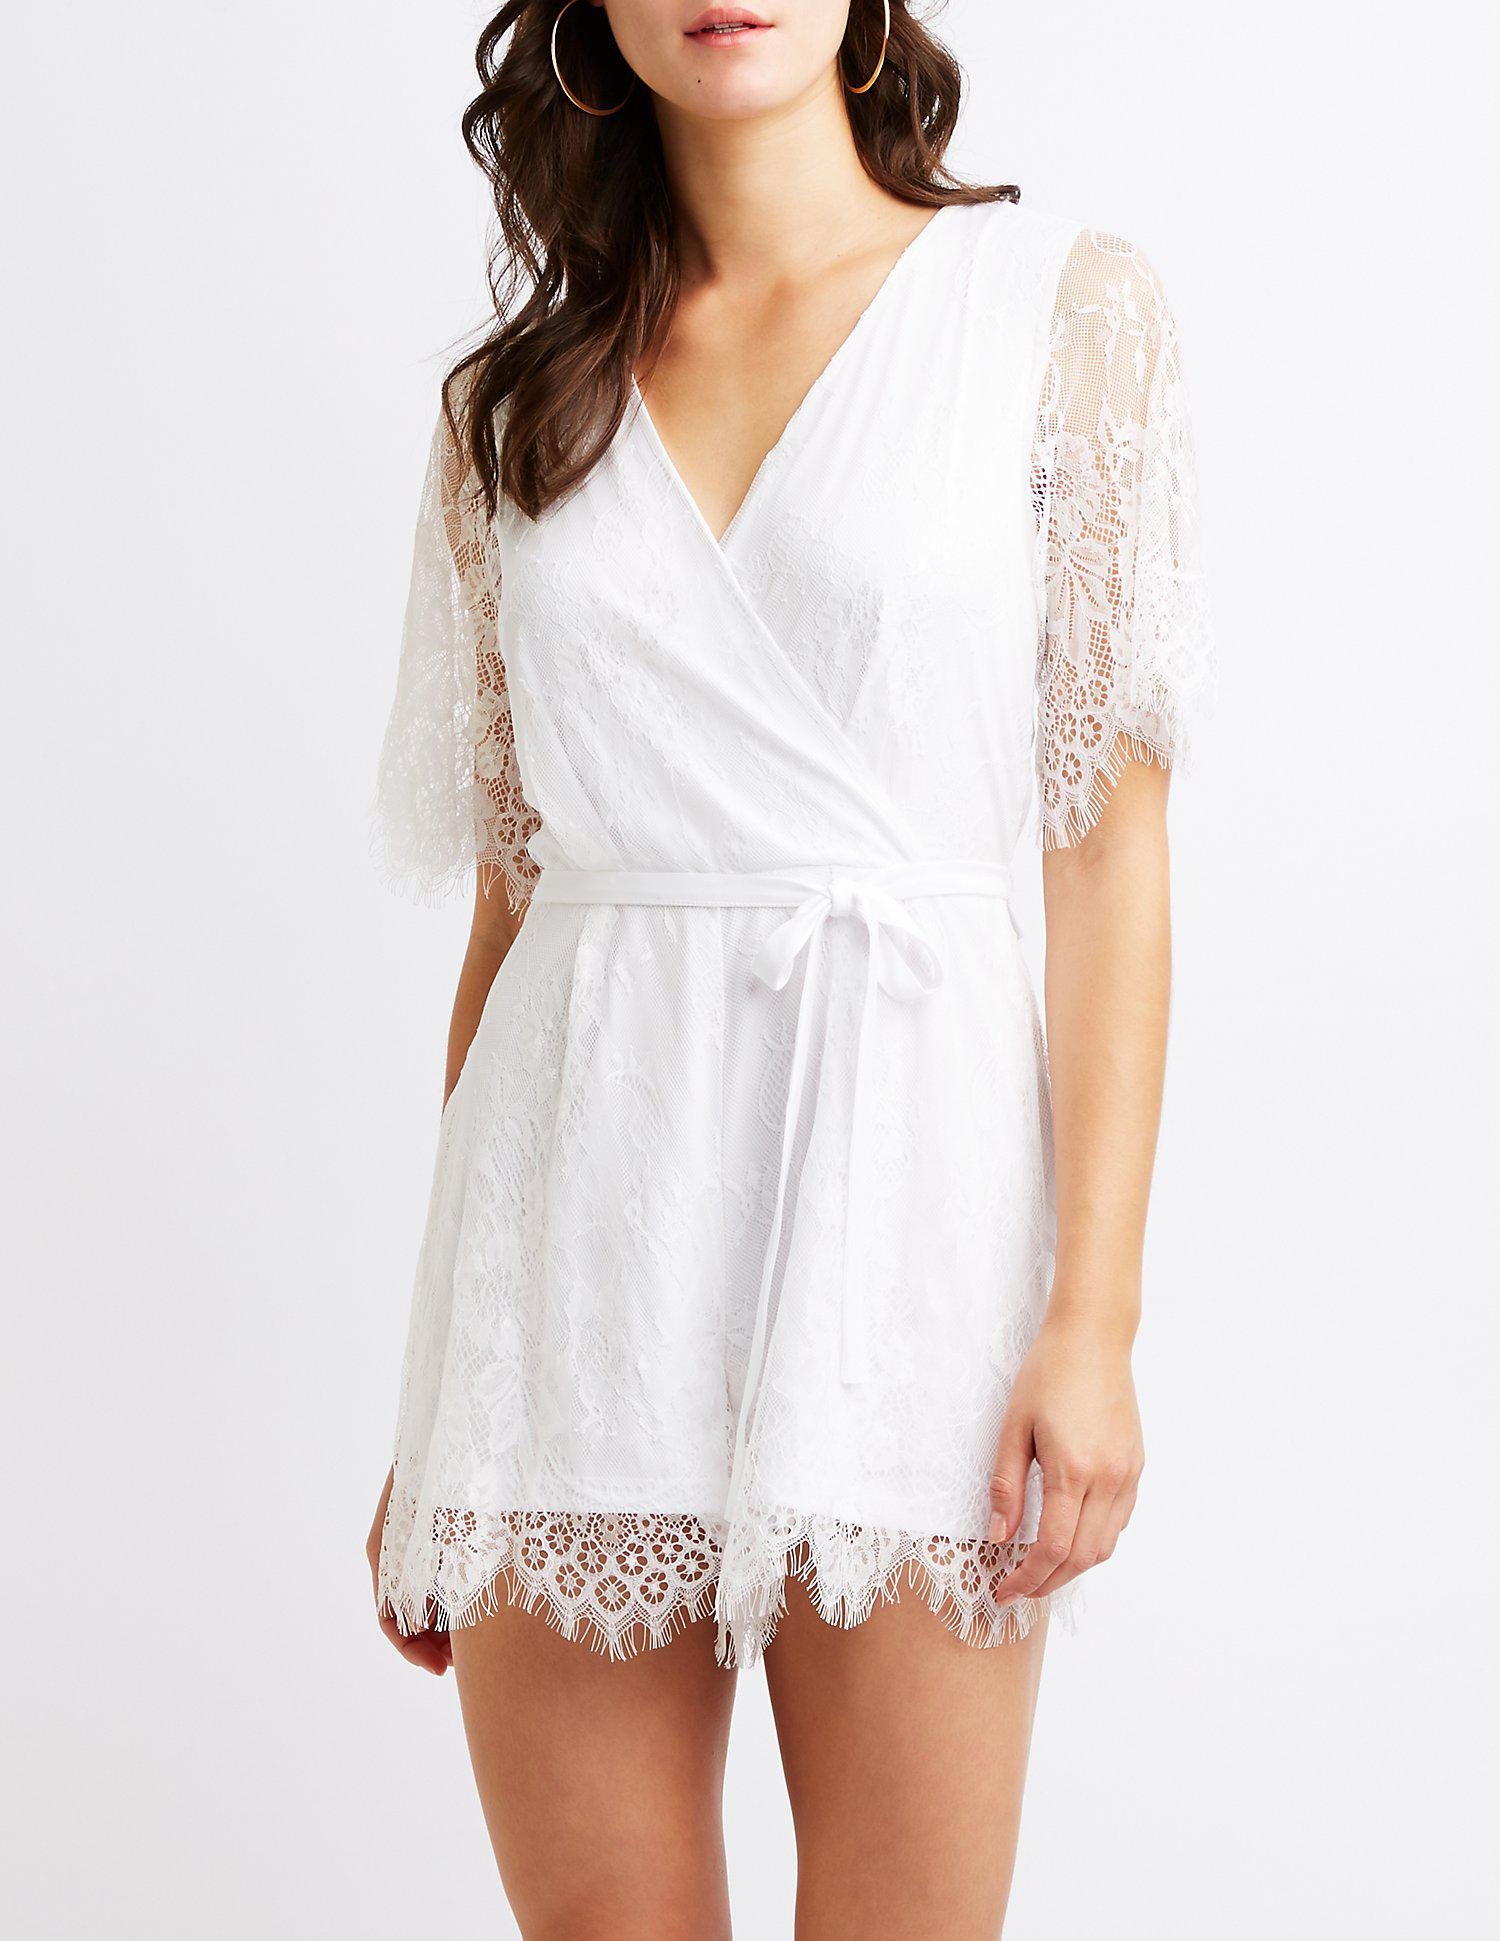 8fdbeb9c65a8 Lyst - Charlotte Russe Floral Lace Wrap Romper in White